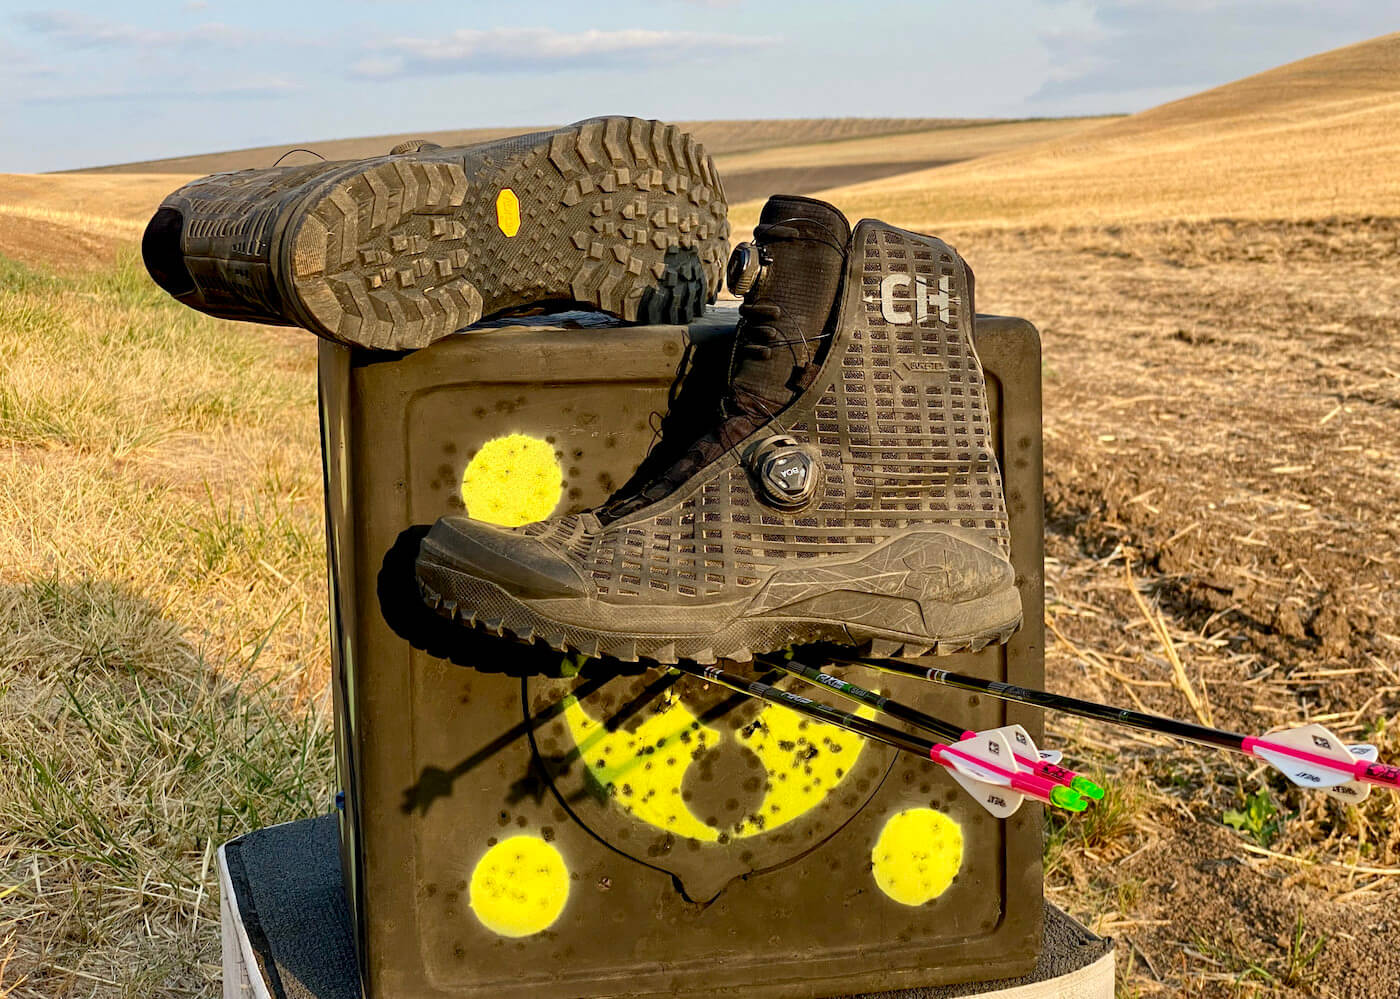 This review photo shows the Under Armour UA CH1 GORE-TEX Hunting Boots on an archery target out in a field.